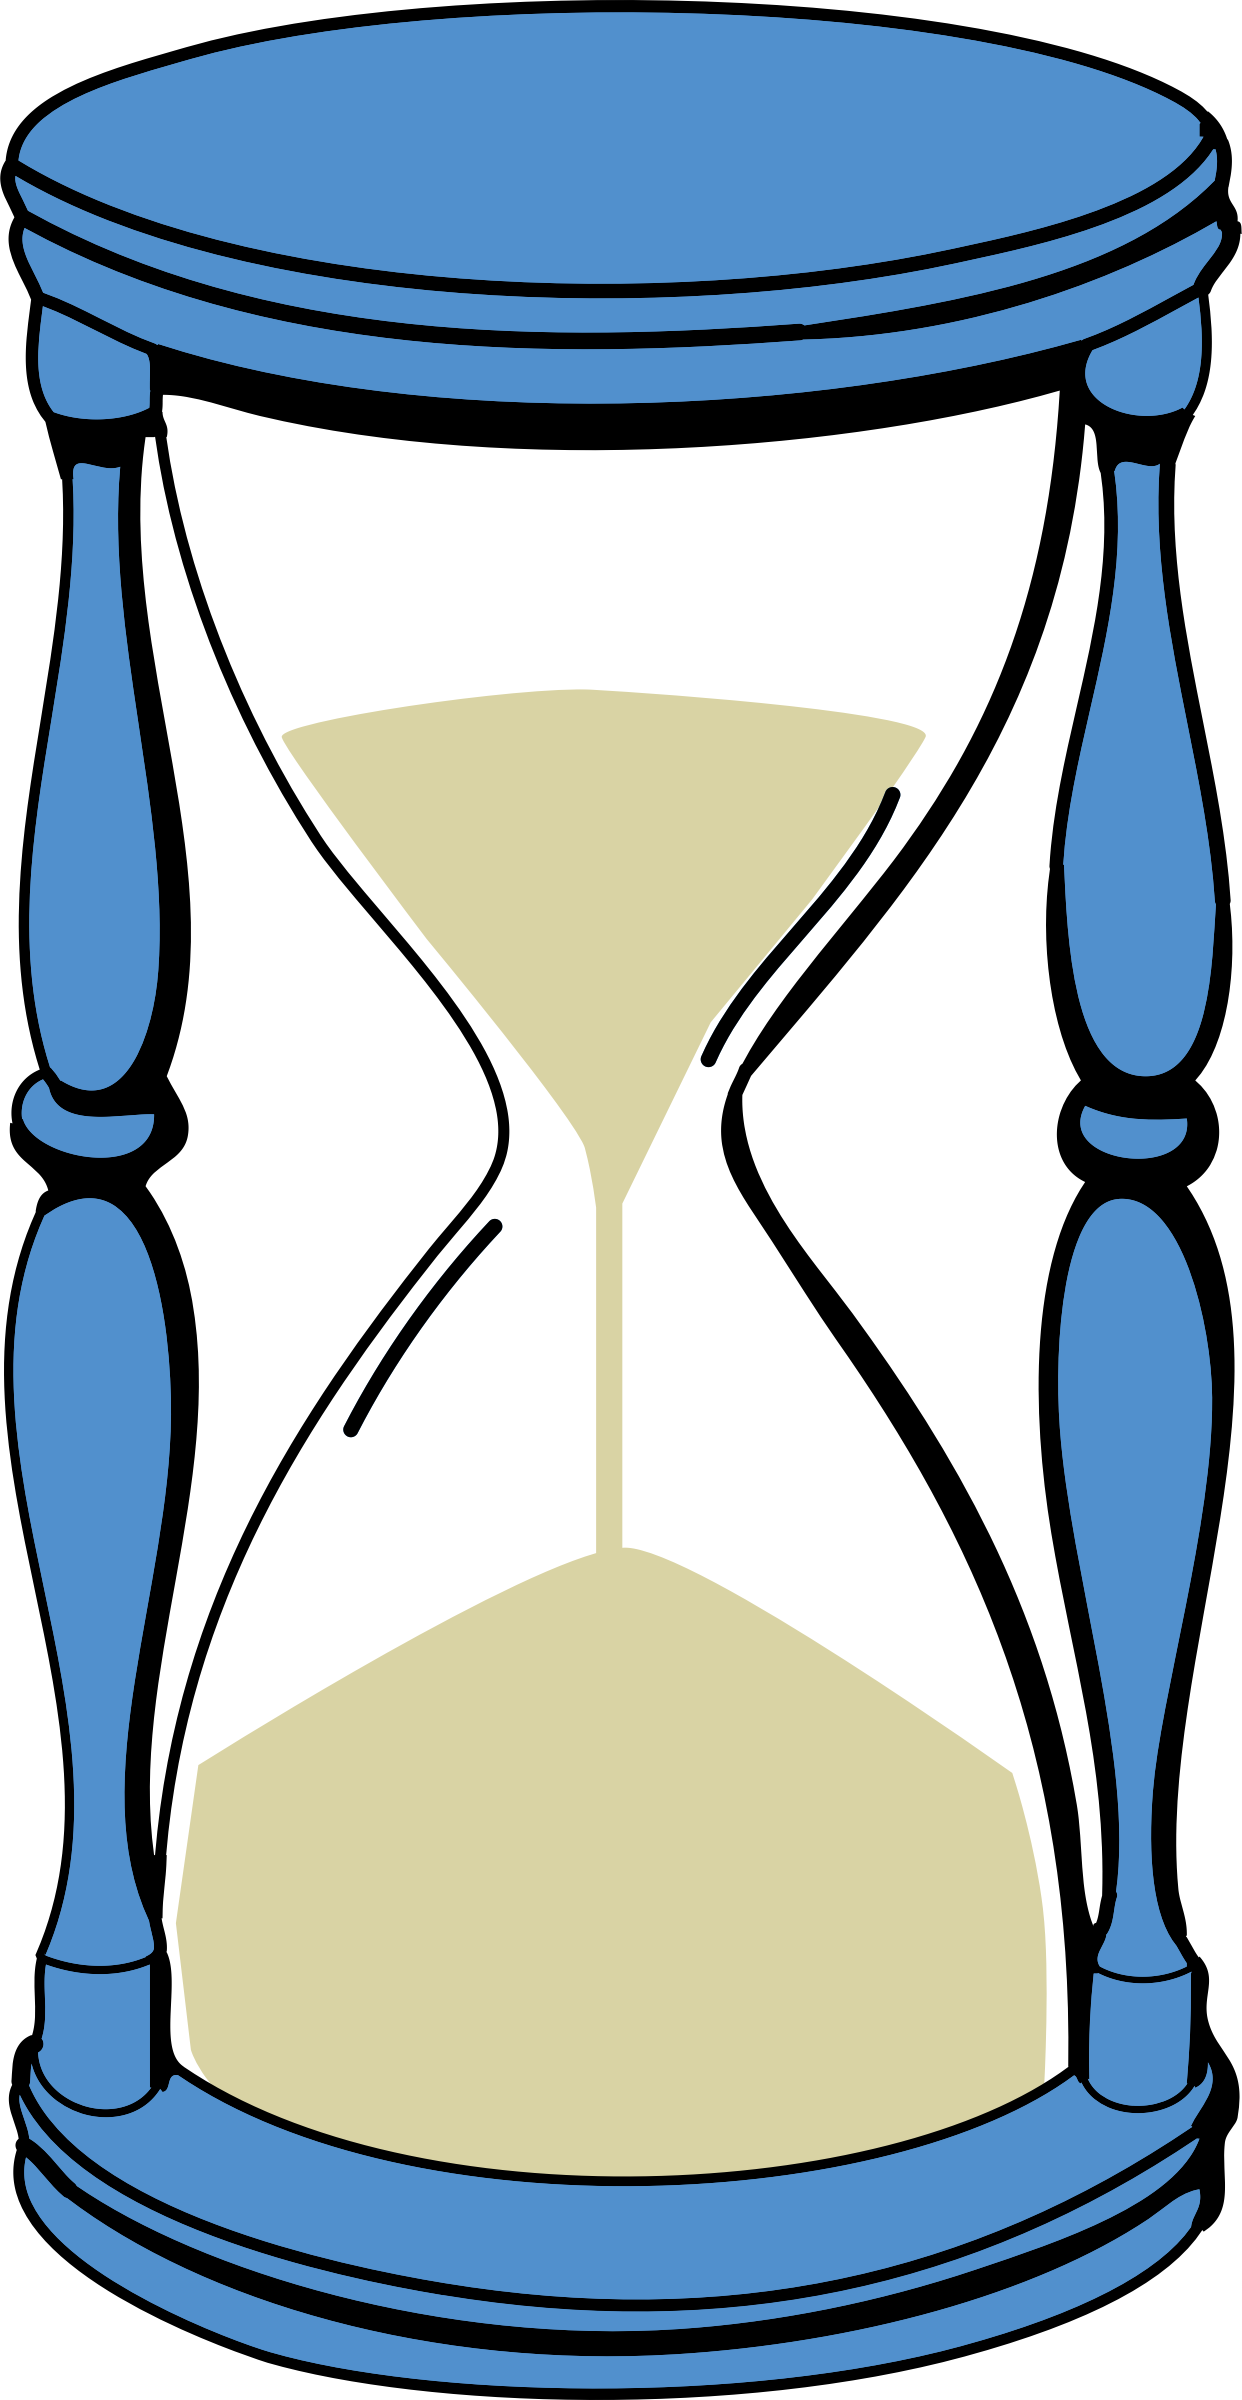 With sand big image. Hourglass clipart